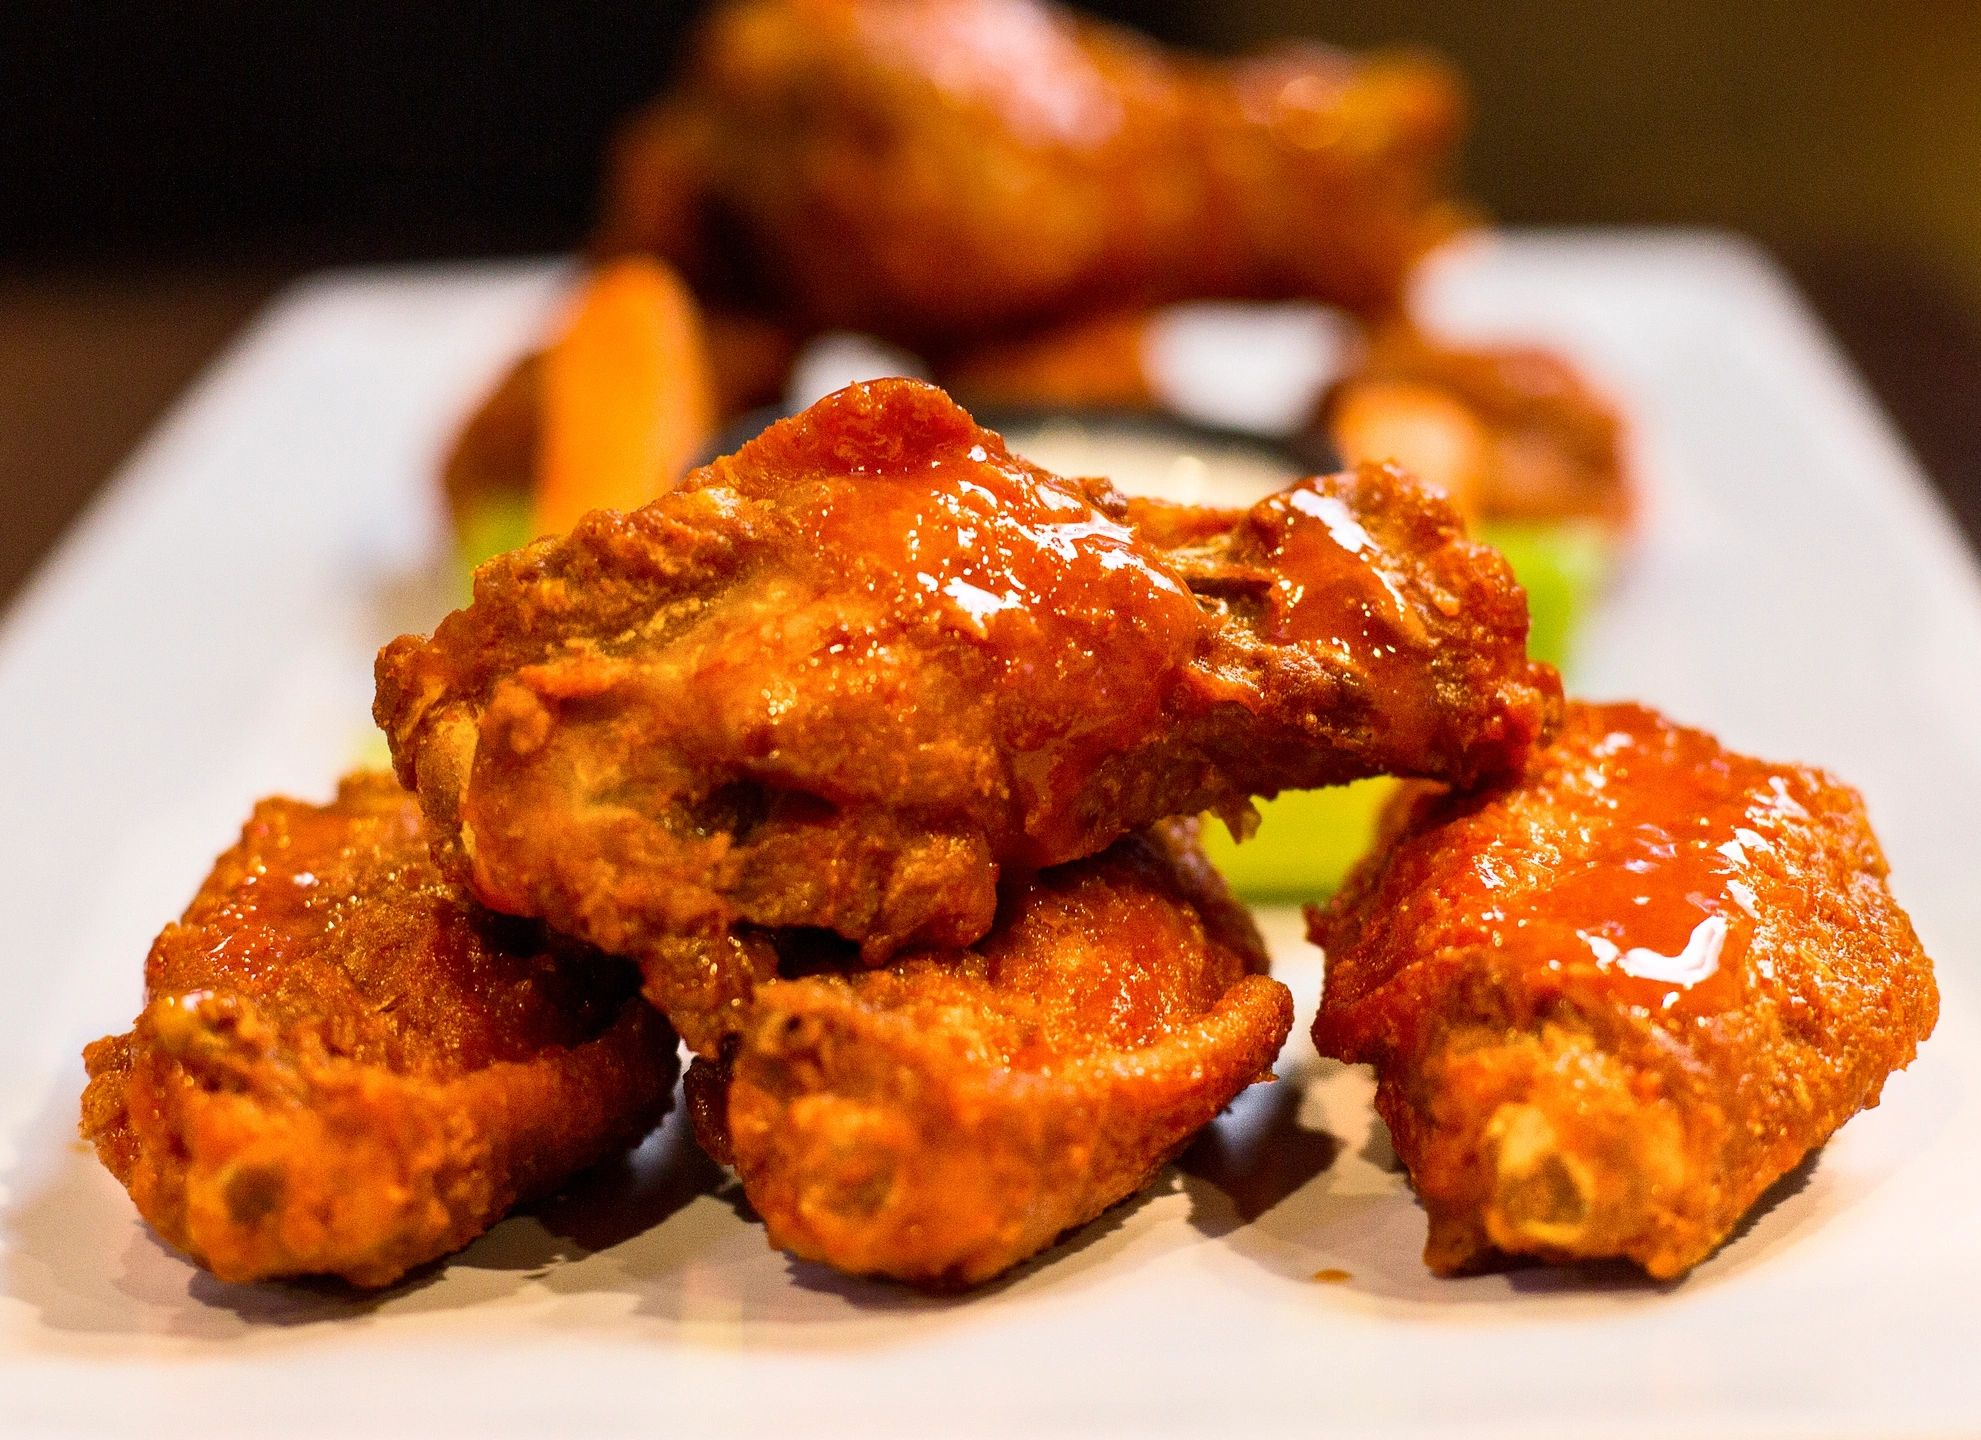 Chicken wings seasoned and covered in Buffalo Sauce